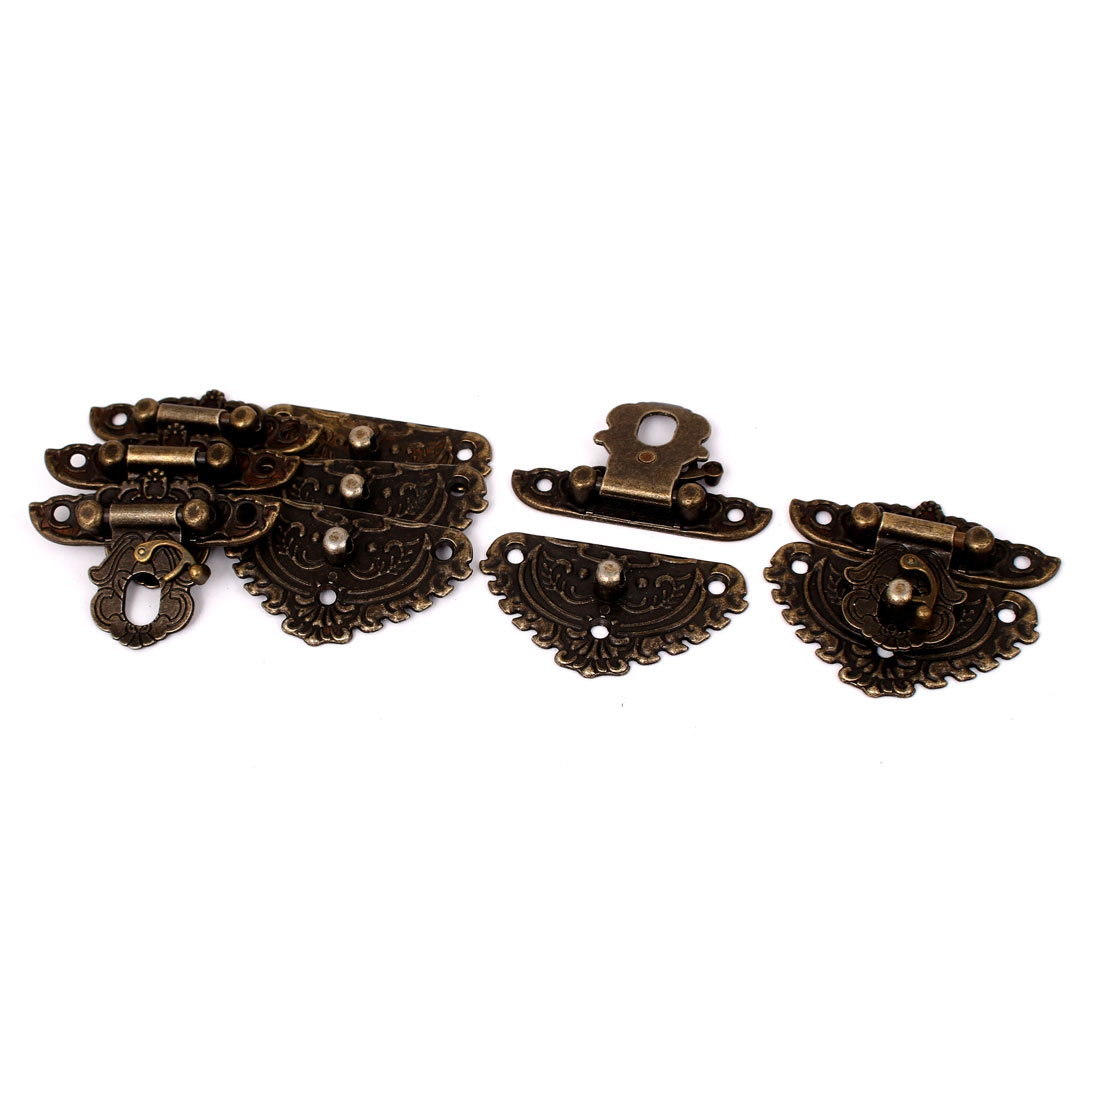 54mmx48mm Vintage Style Wooden Box Case Hook Lock Lid Latch Bronze Tone 5pcs